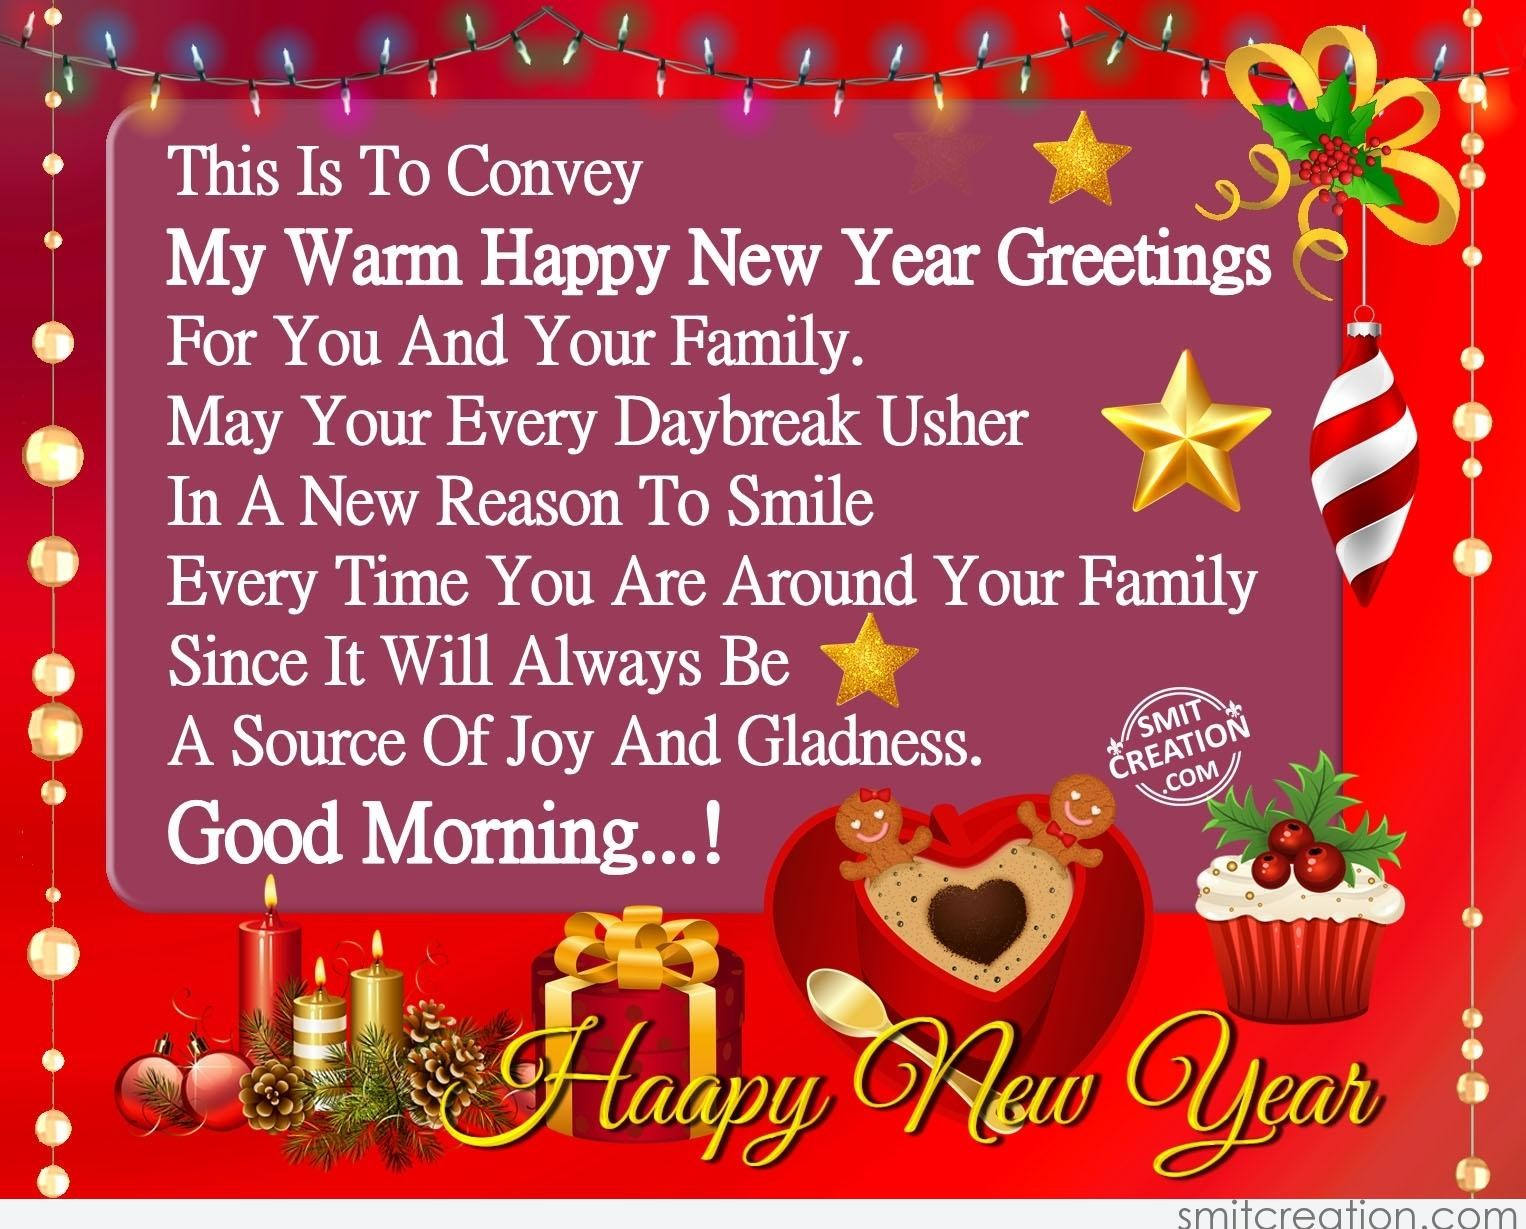 Good Morning New Year Greetings 2019 New Year Images